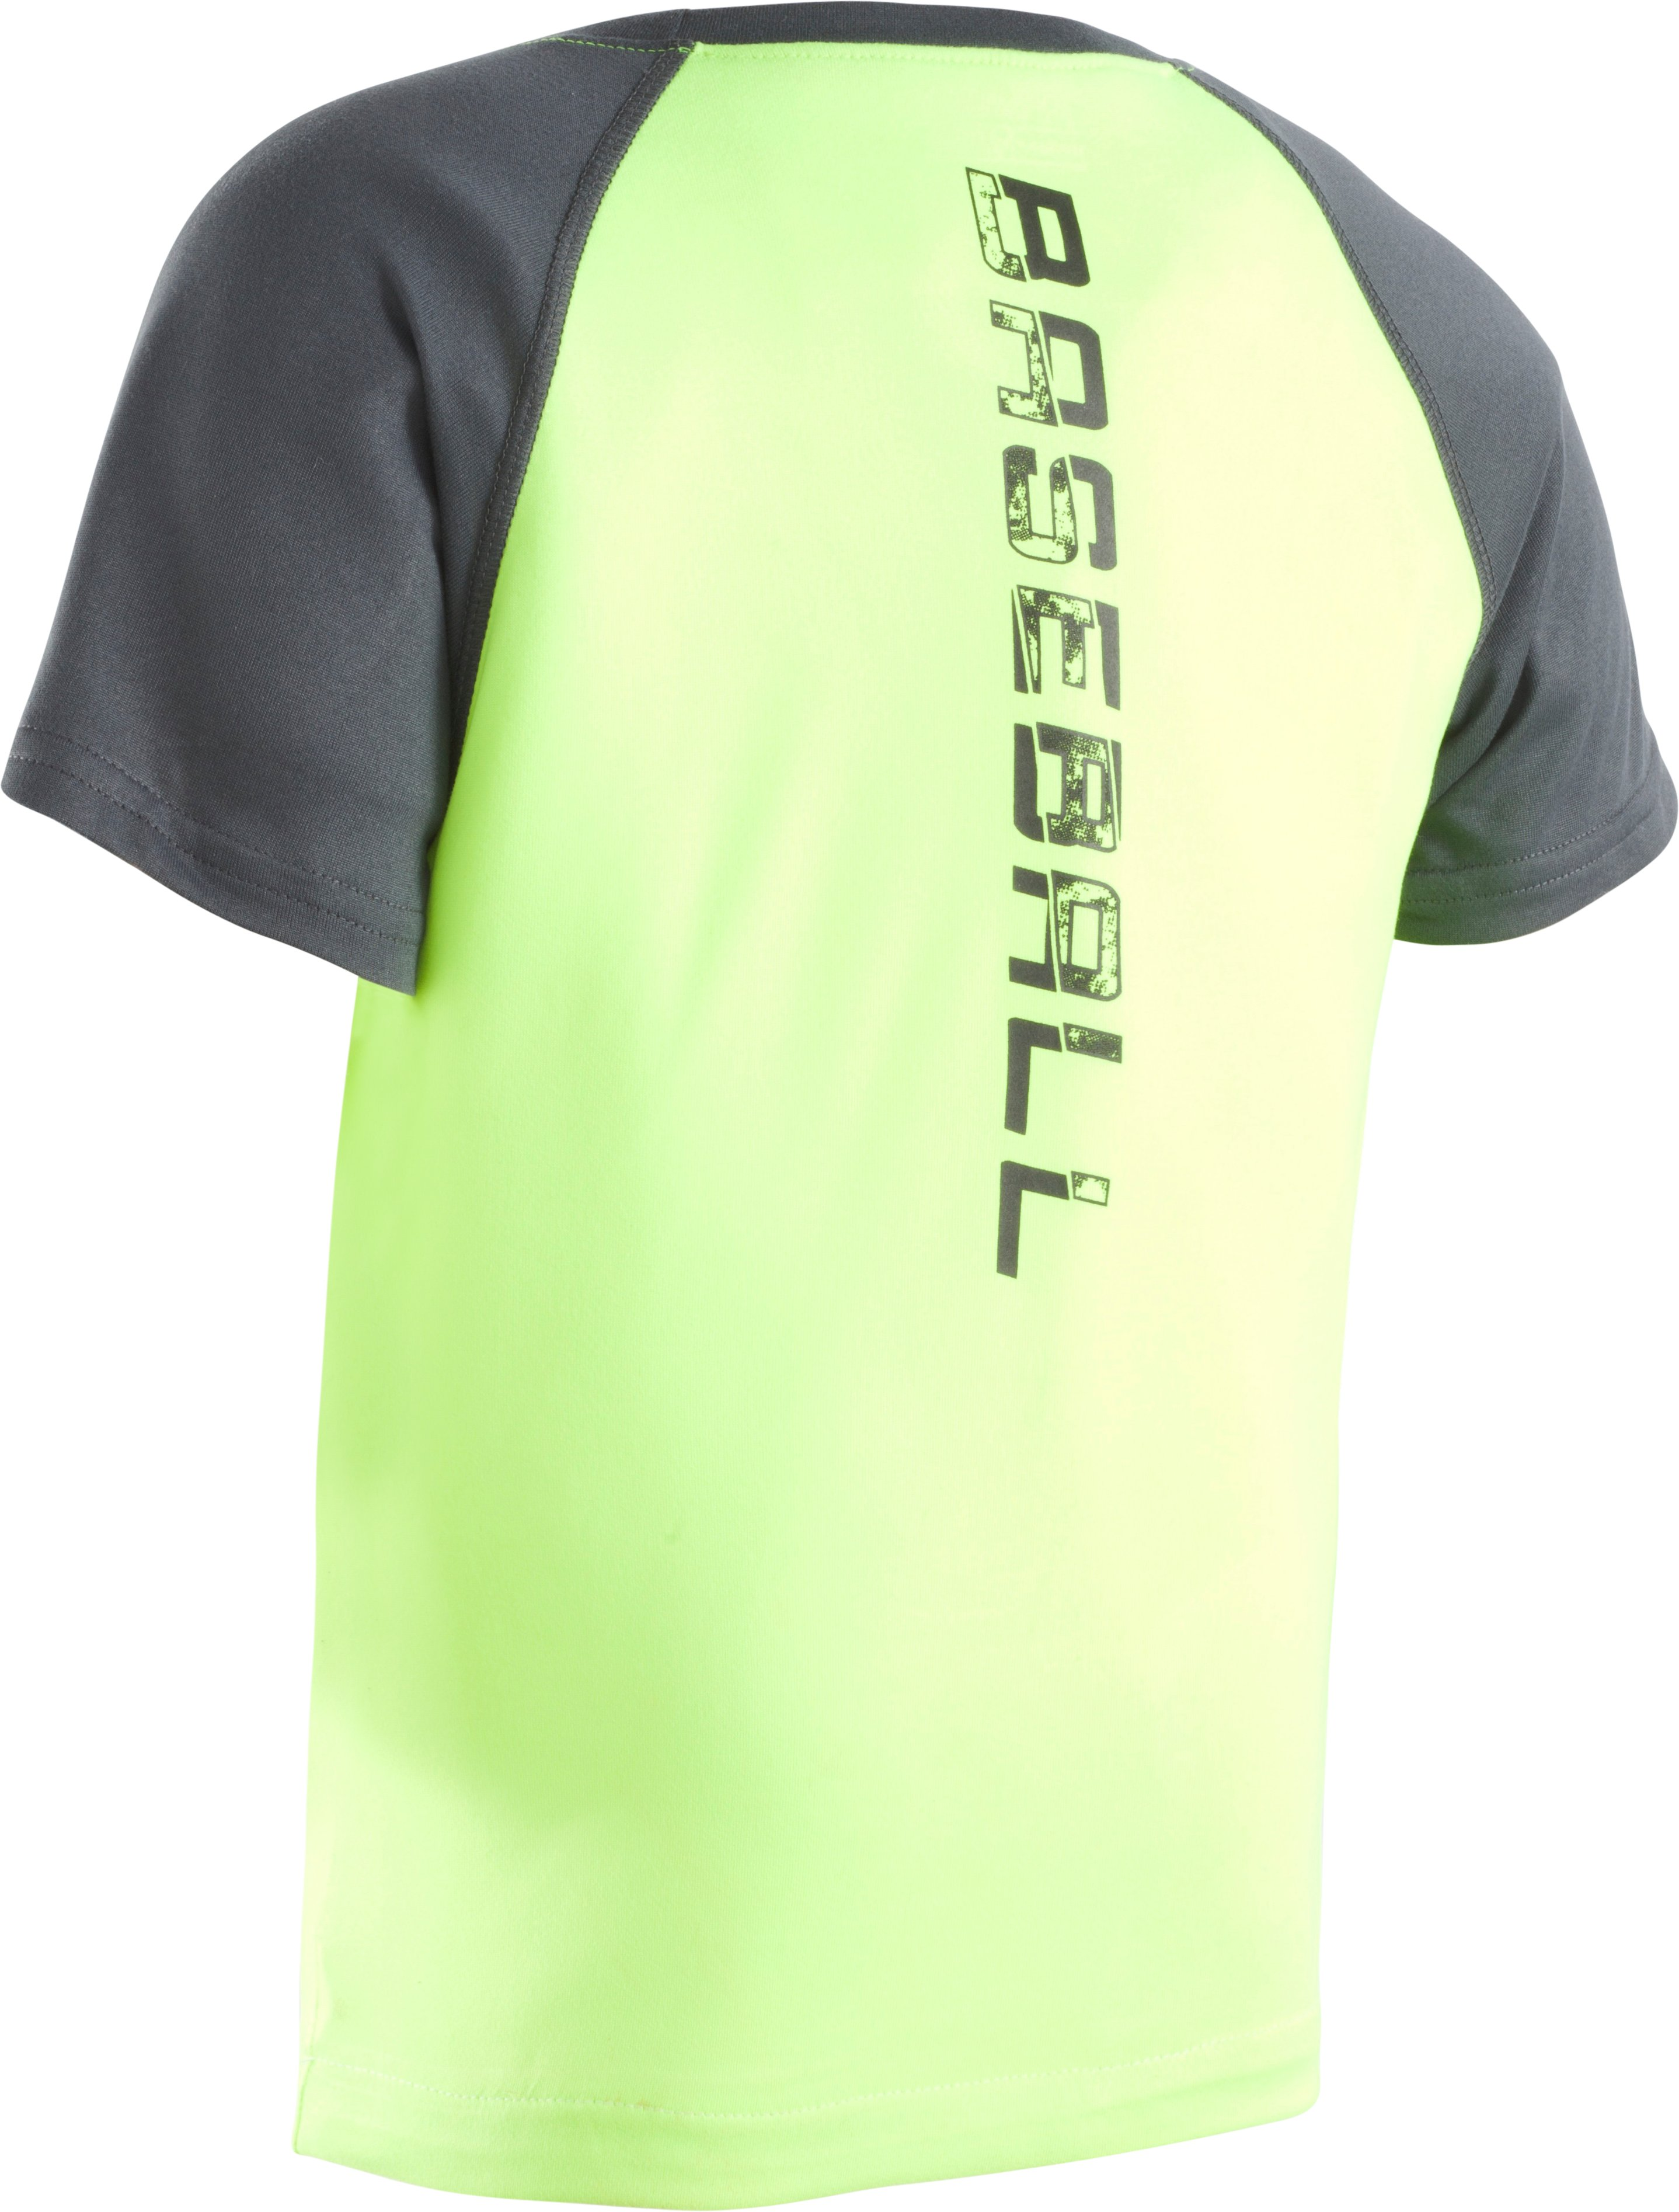 Boys' Pre-School UA Home Plate Logo Raglan Short Sleeve T-Shirt, FUEL GREEN